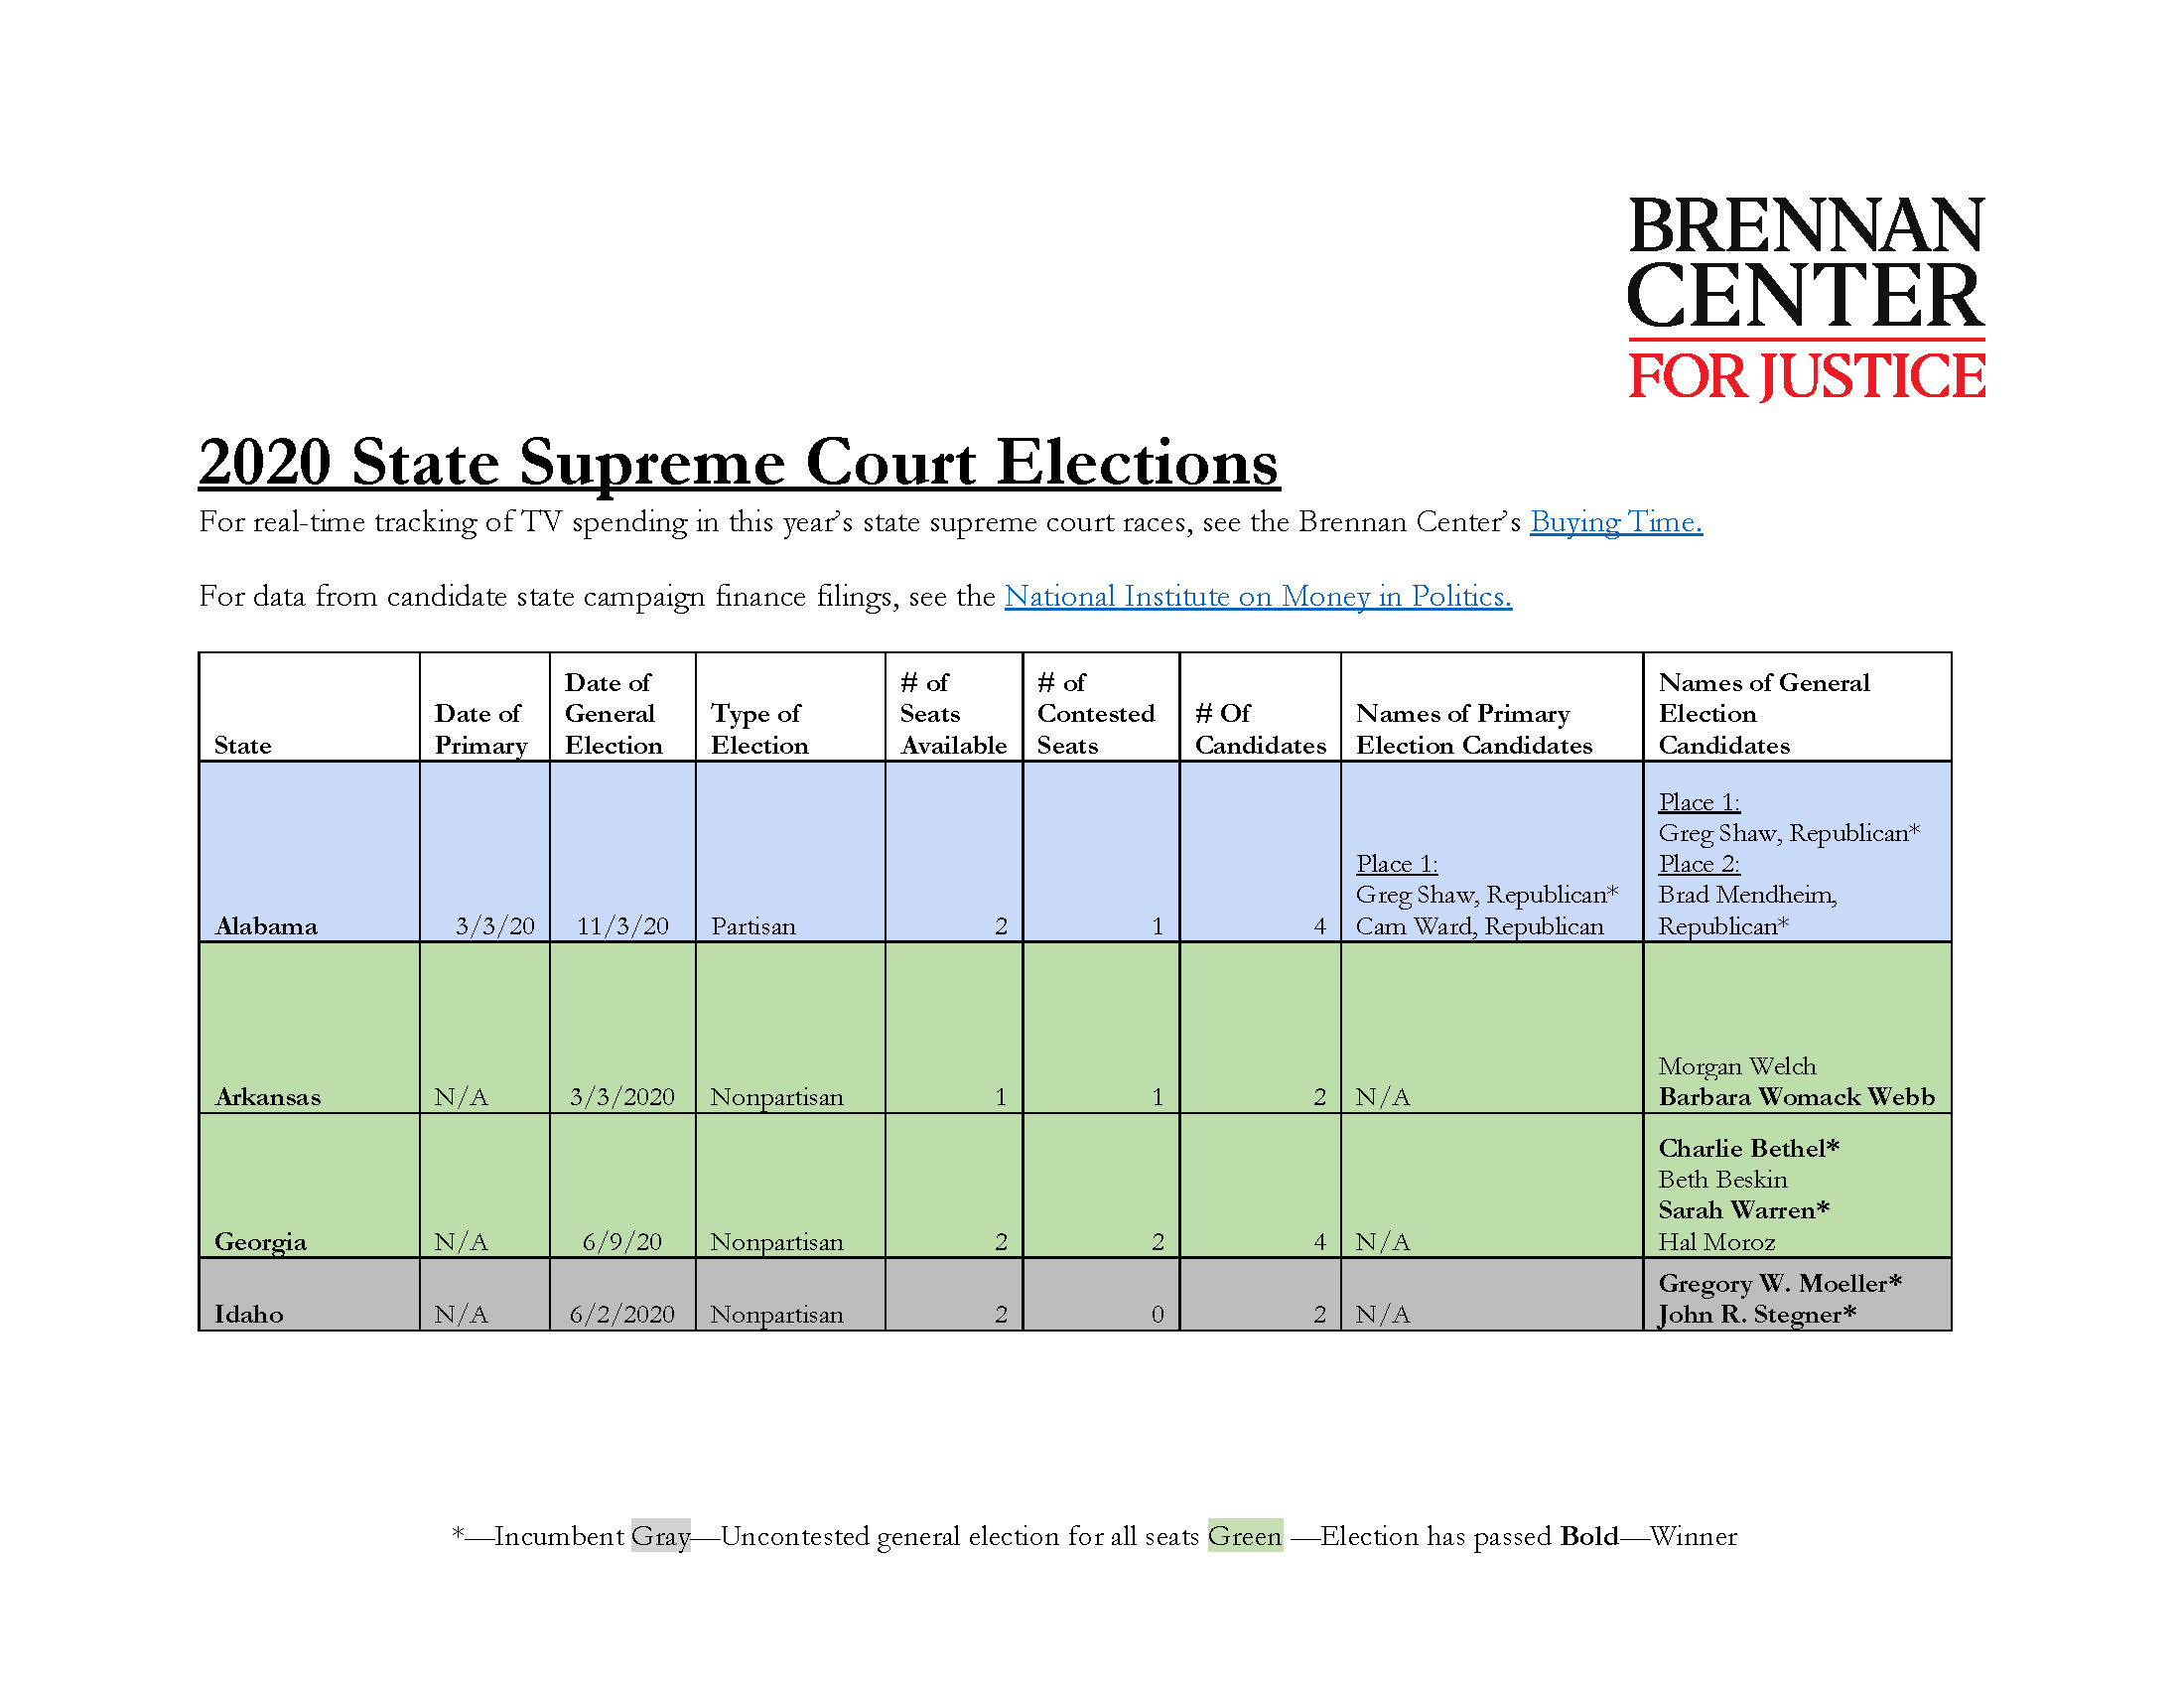 2020 State Supreme Court Elections Spreadsheet